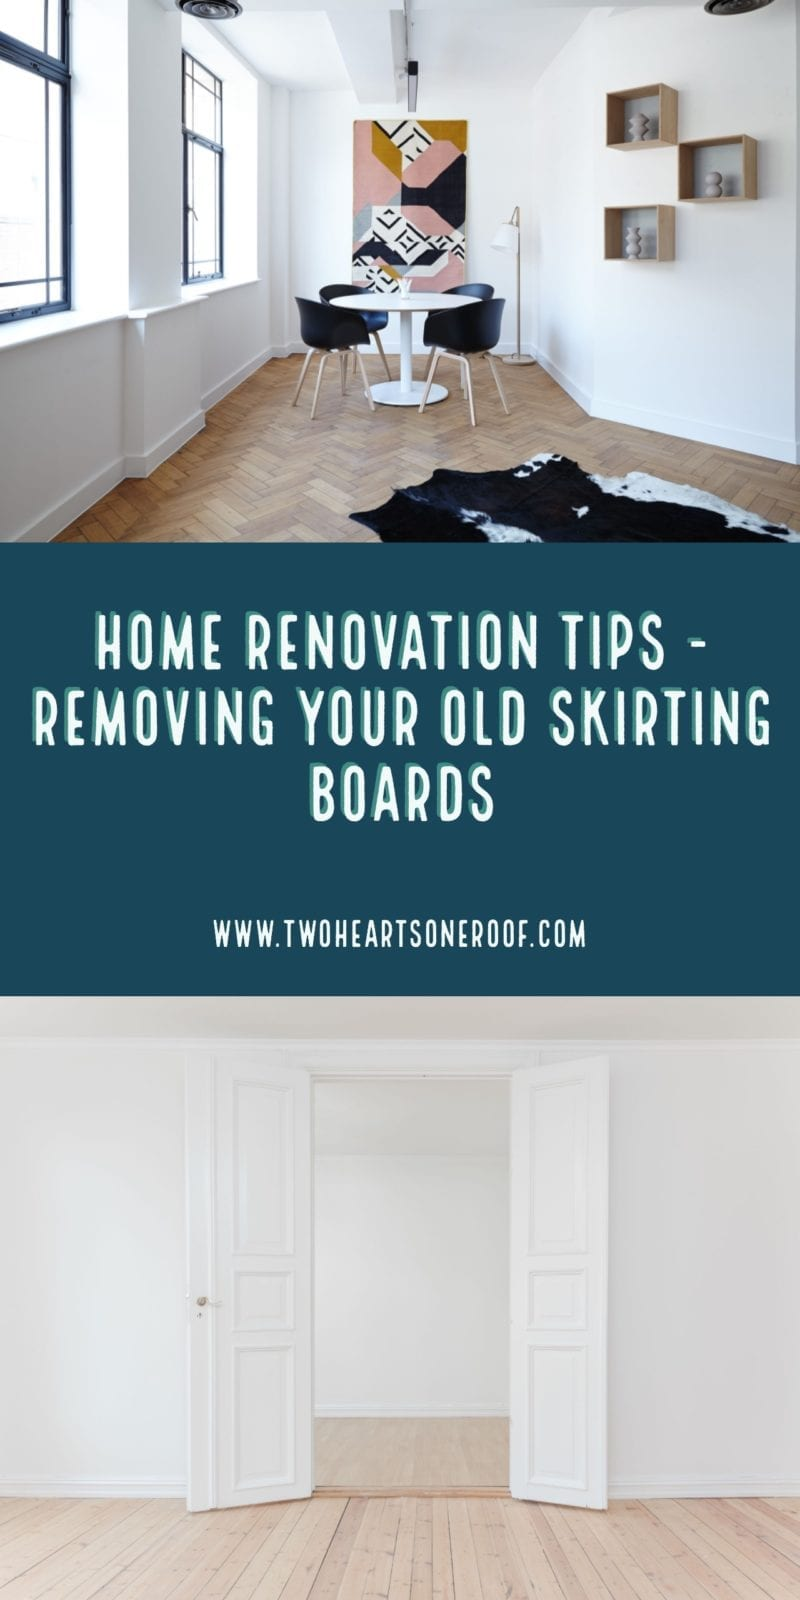 Home renovation tips - how to remove skirting boards